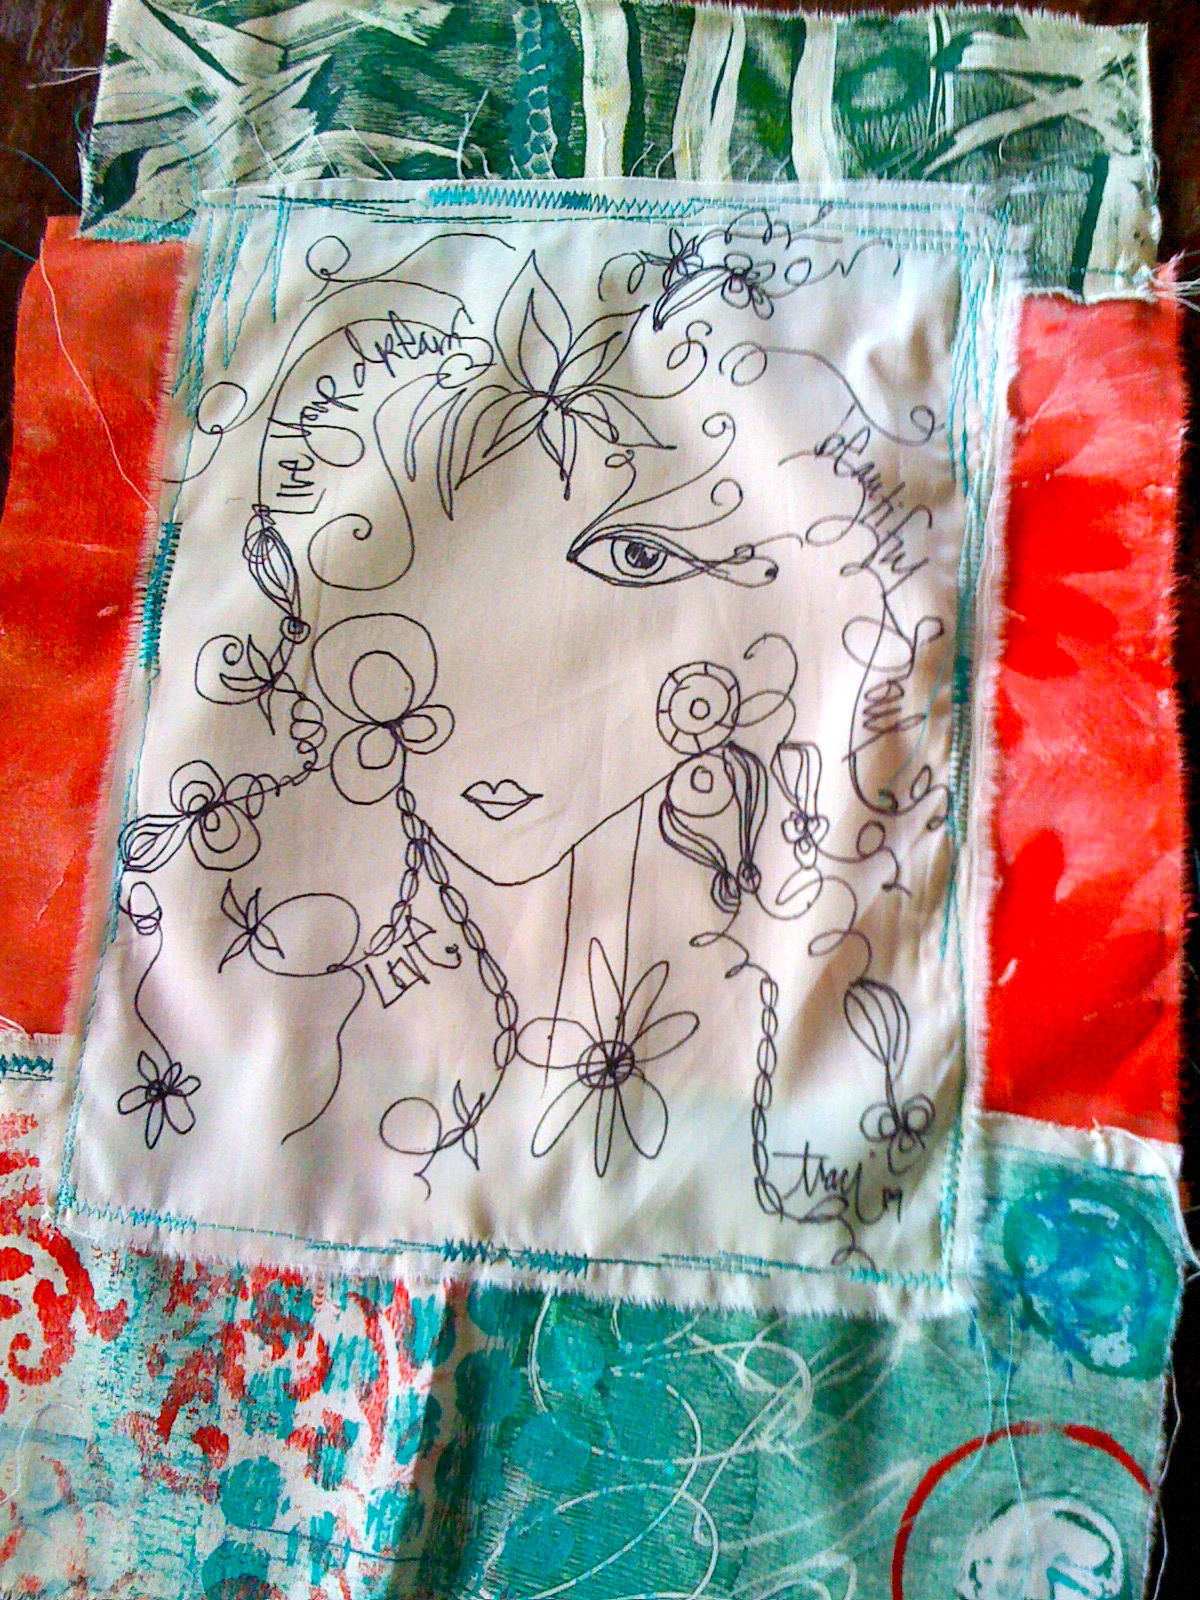 girlie glam art quilt